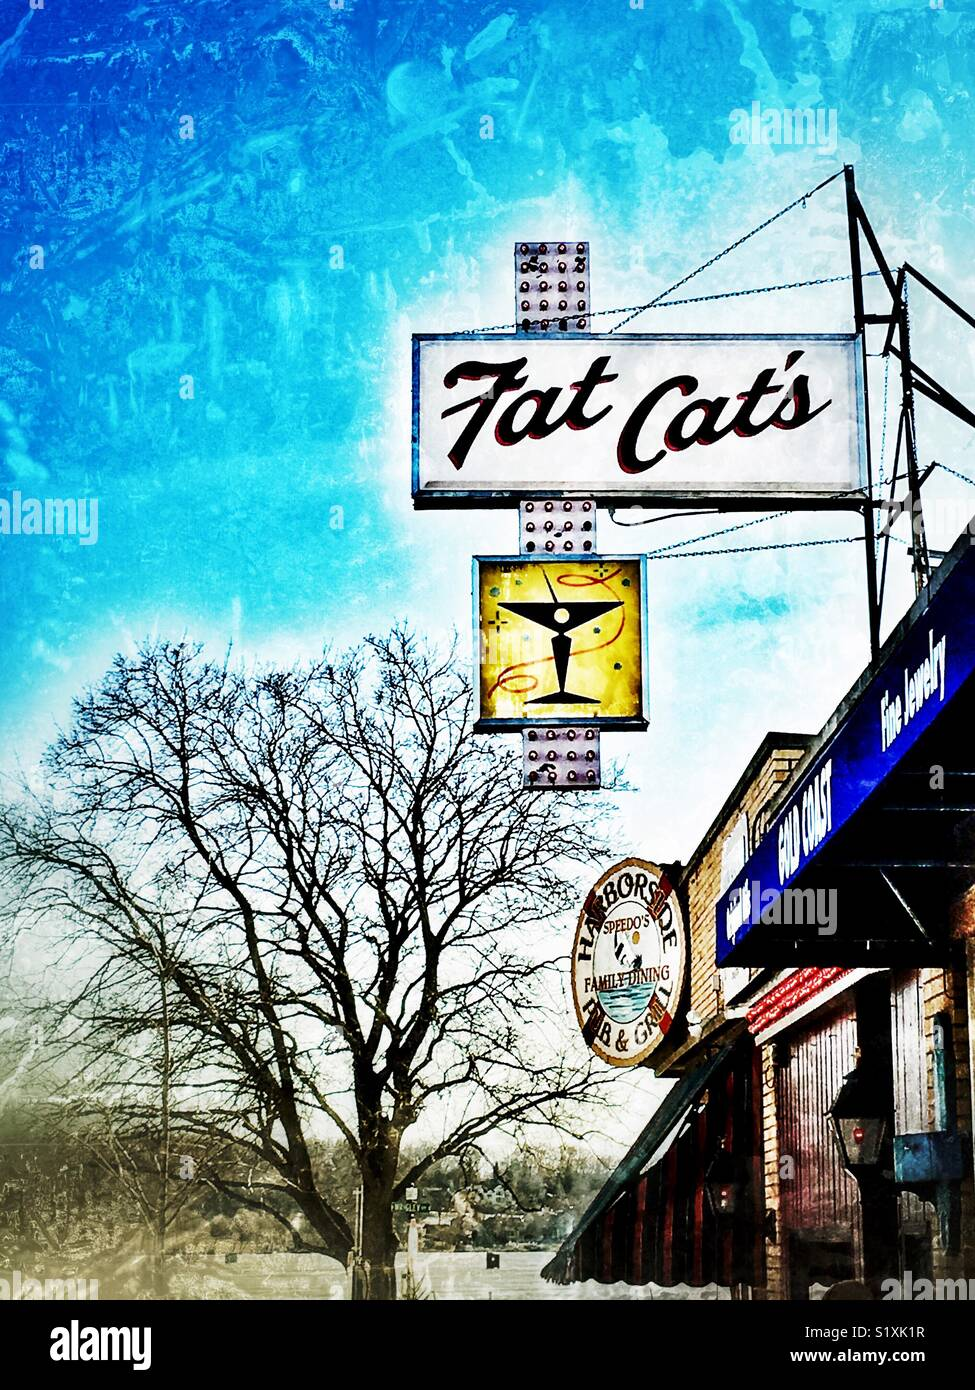 Billboard for Fat Cats bar alongside gift shop and Harborside Pub & Gill in downtown Lake Geneva, WI - Stock Image